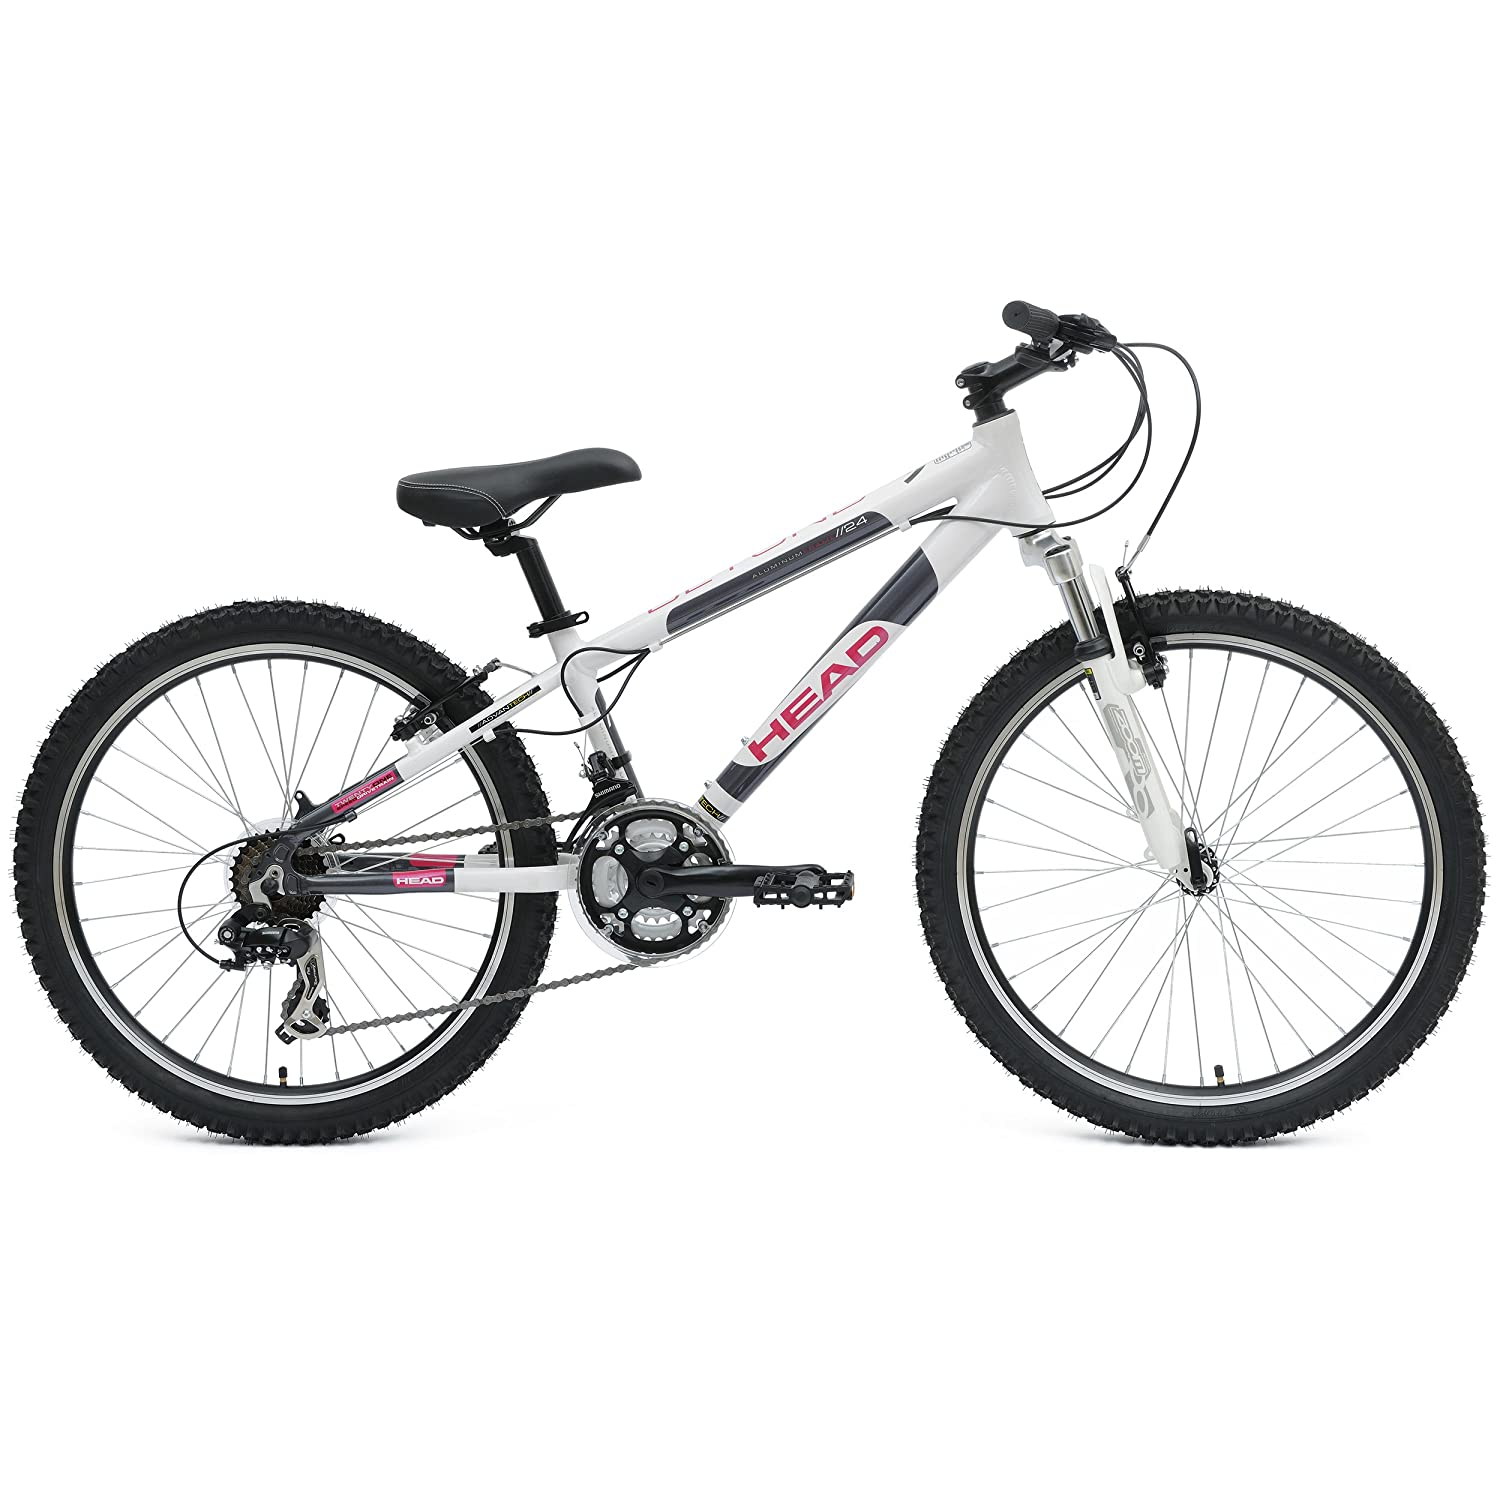 Head Beyond Mountain Bike, 24 inch wheels